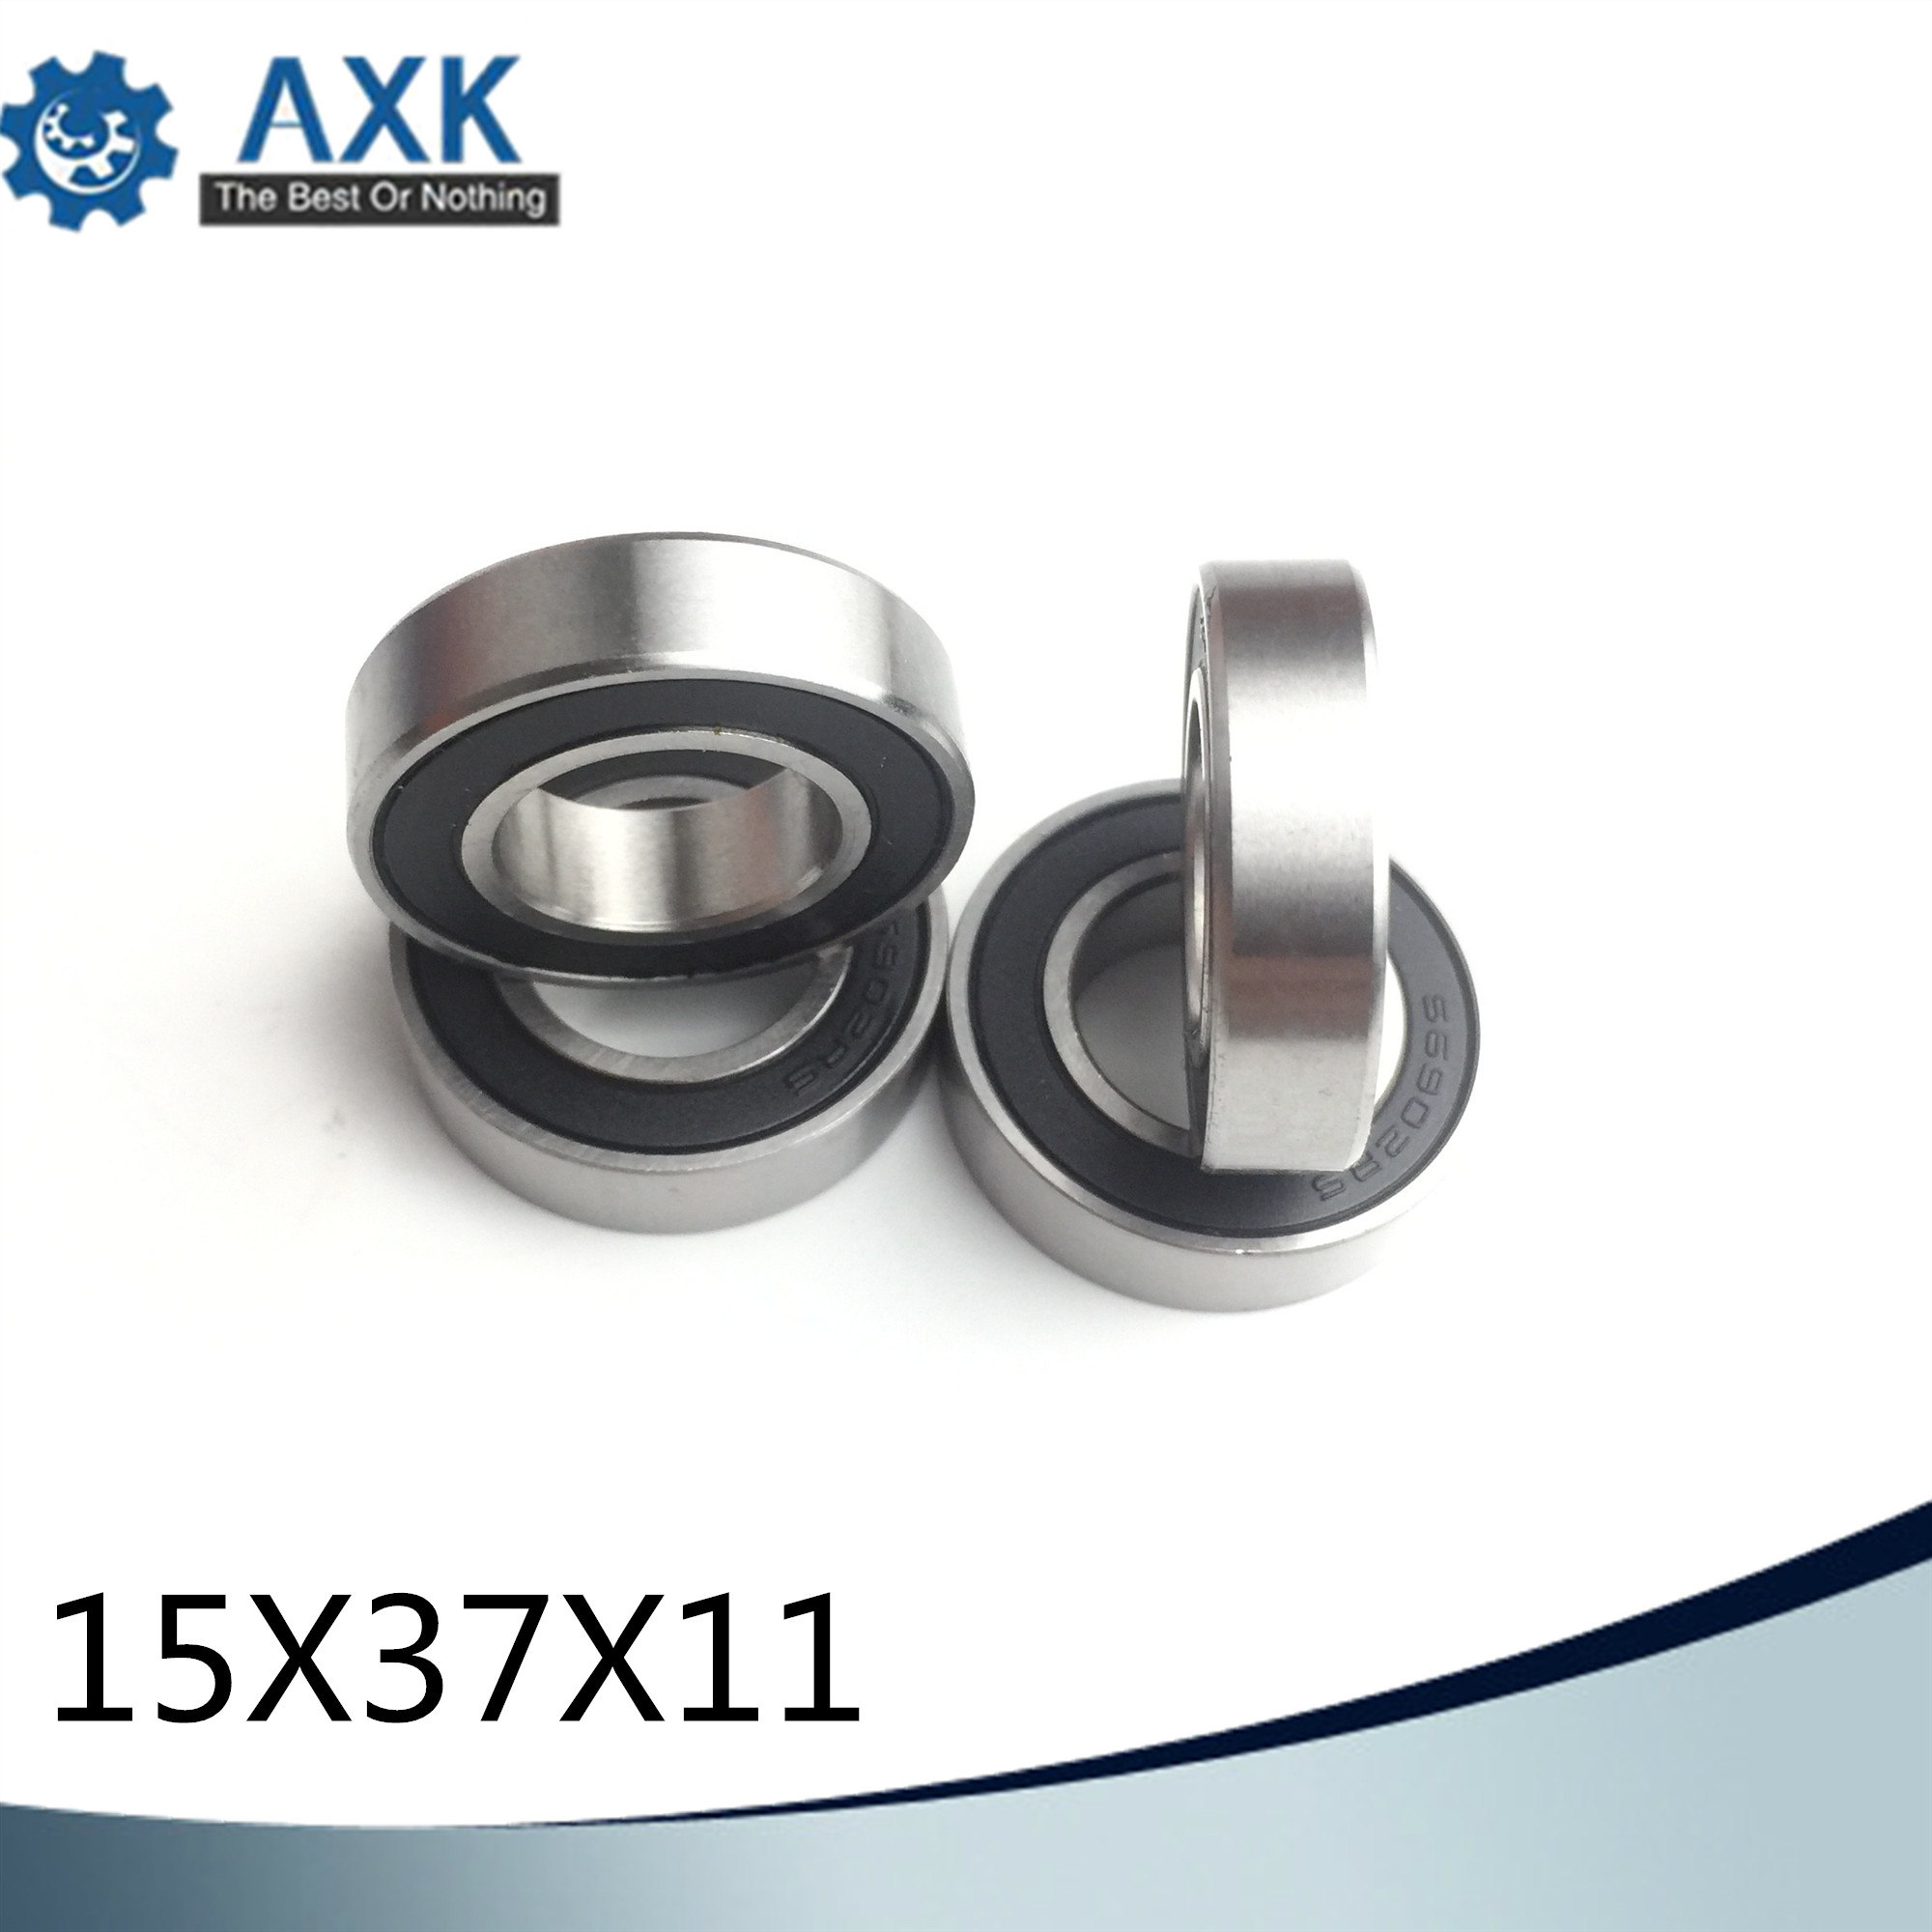 6814-2RS 70x90x10mm ABEC1 Thin-wall Shielded Deep Groove Ball Bearing